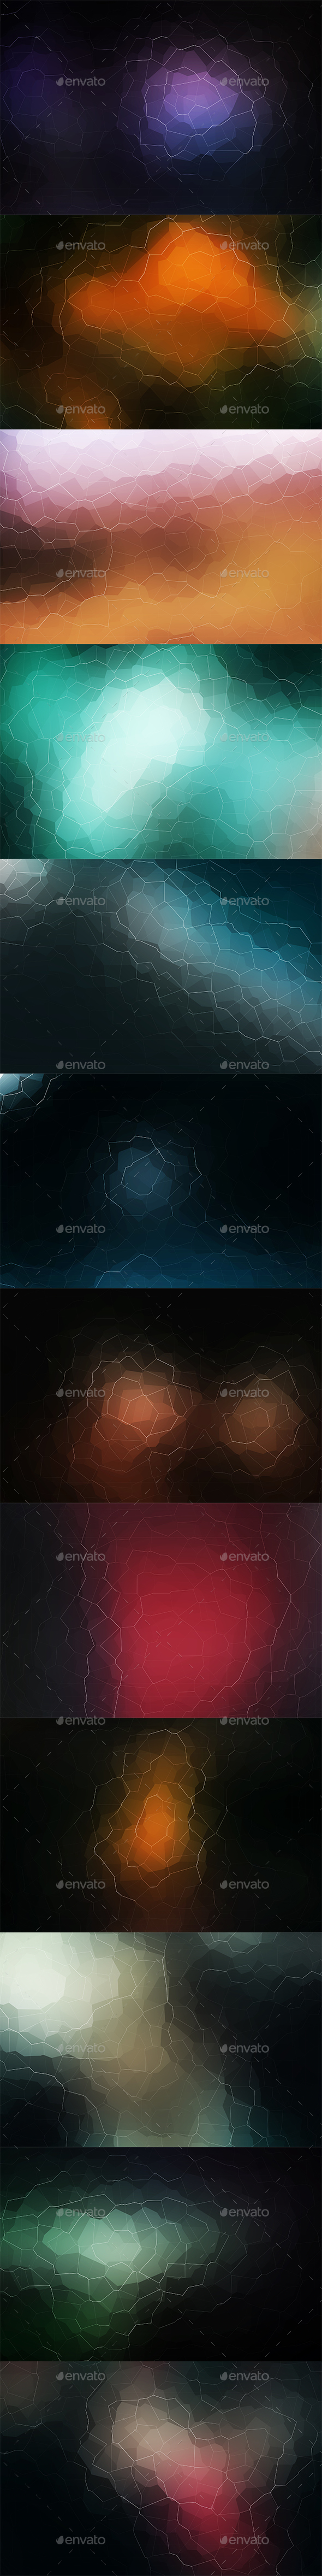 Crystallized Backgrounds Vol 9 - Abstract Backgrounds